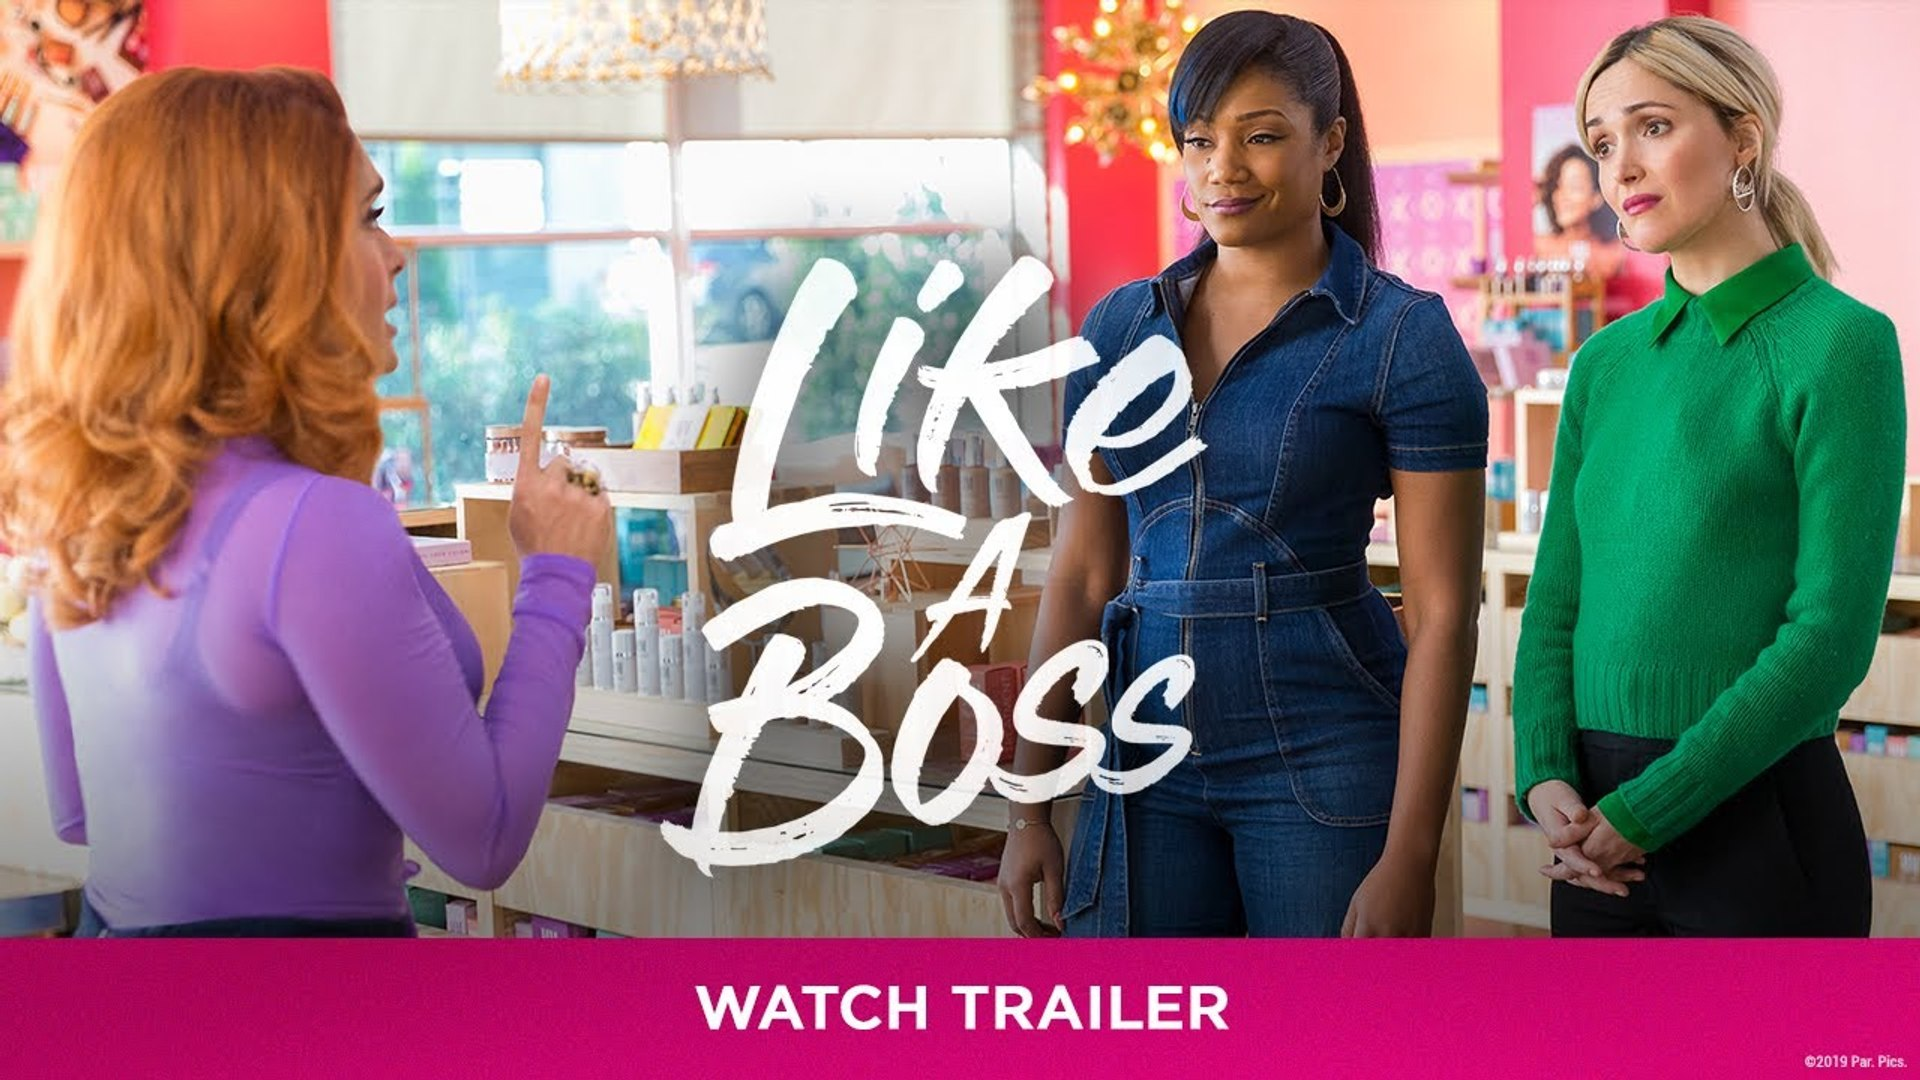 Like a Boss Trailer 01/10/2020